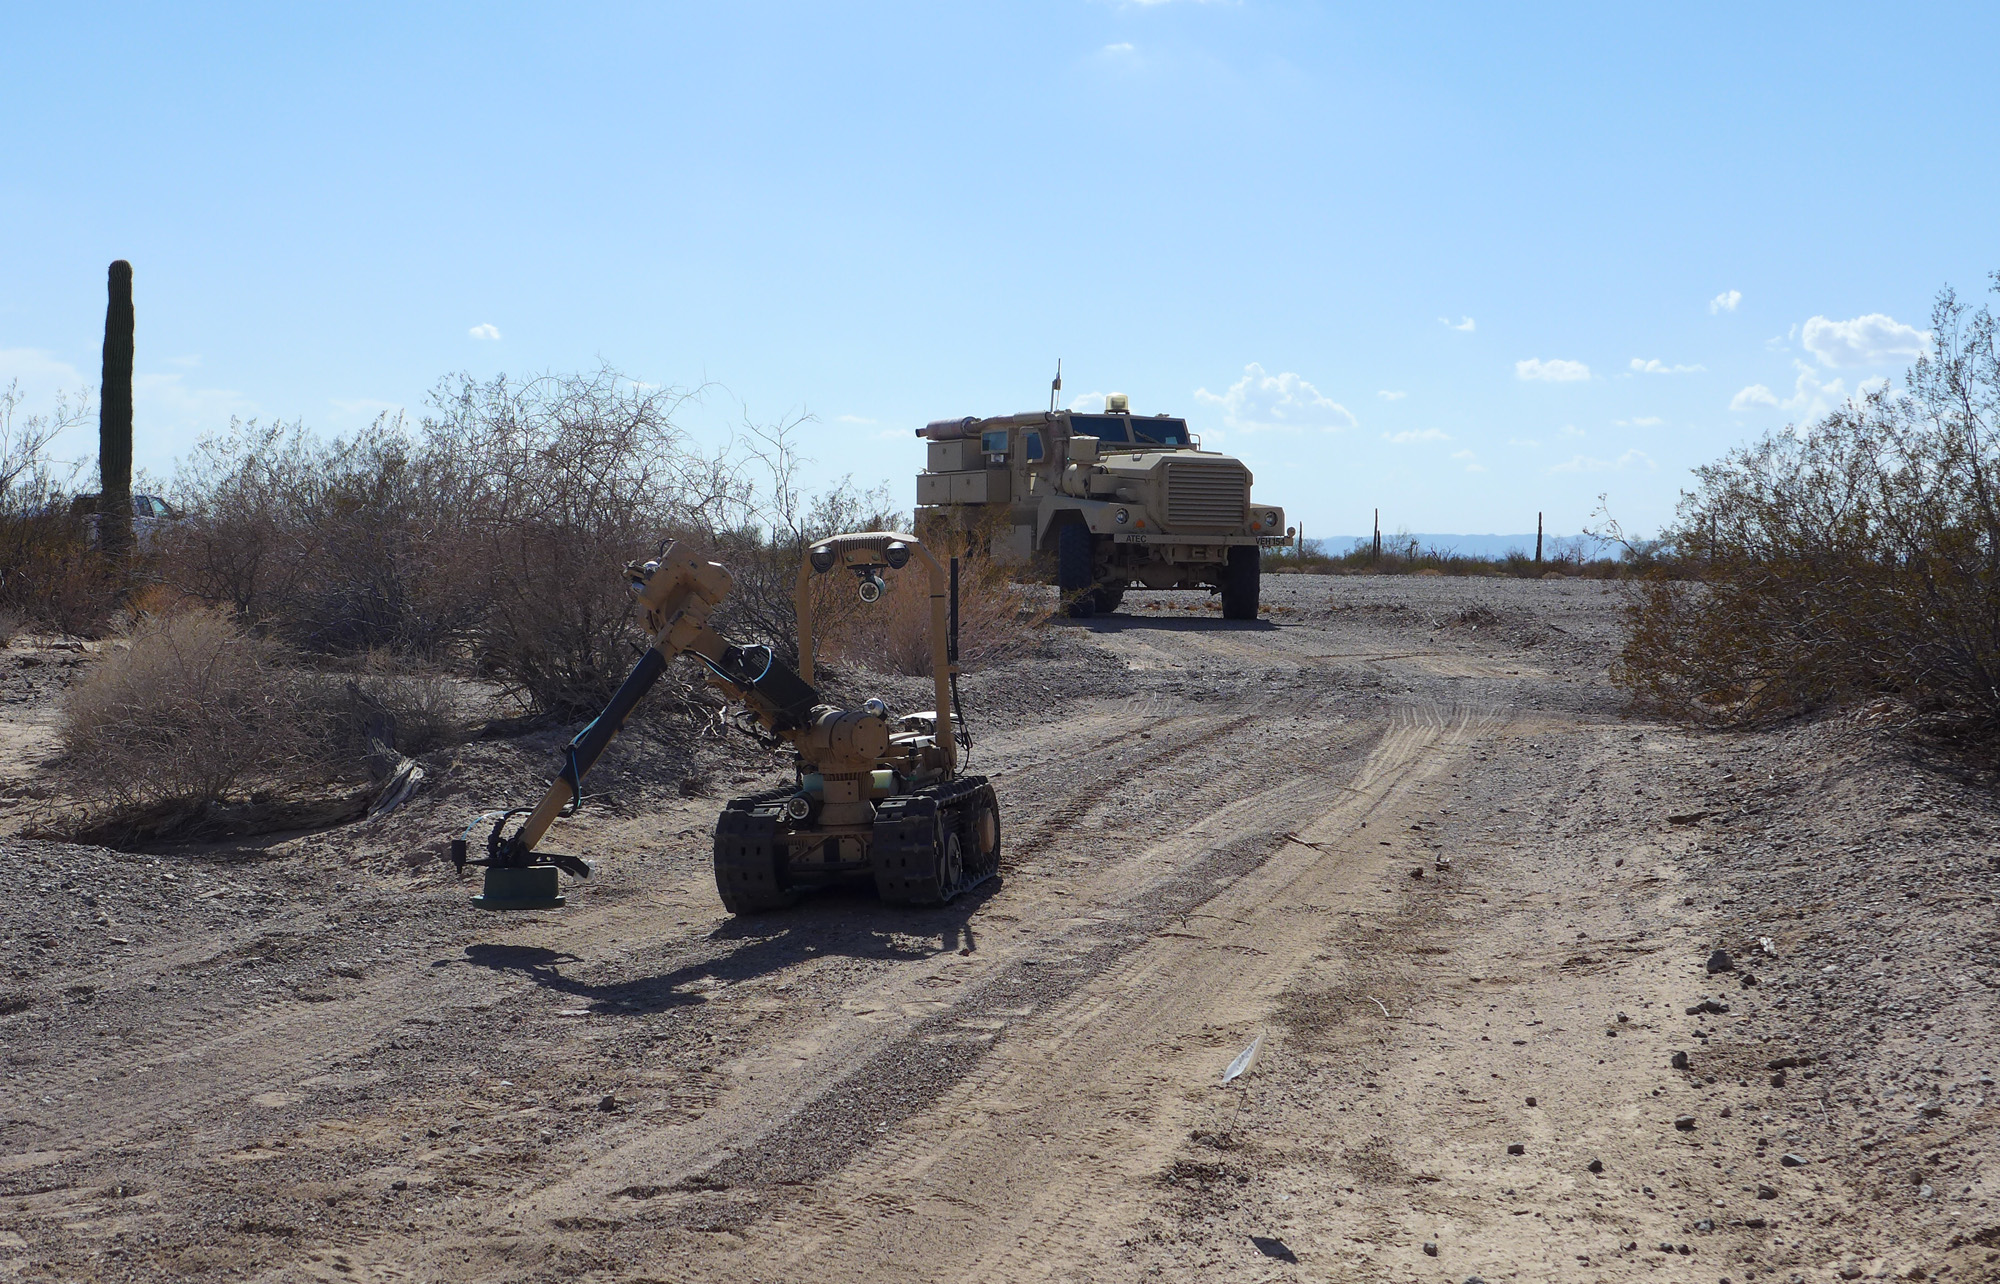 Combat engineers follow SREHD during a route clearance mission. SREHD's capabilities are in line with the Army's renewed focus on the broad range of wide-area security work that builds on the gains made during combined arms maneuver—which SREHD also enables. (Photo courtesy of PM CCS)